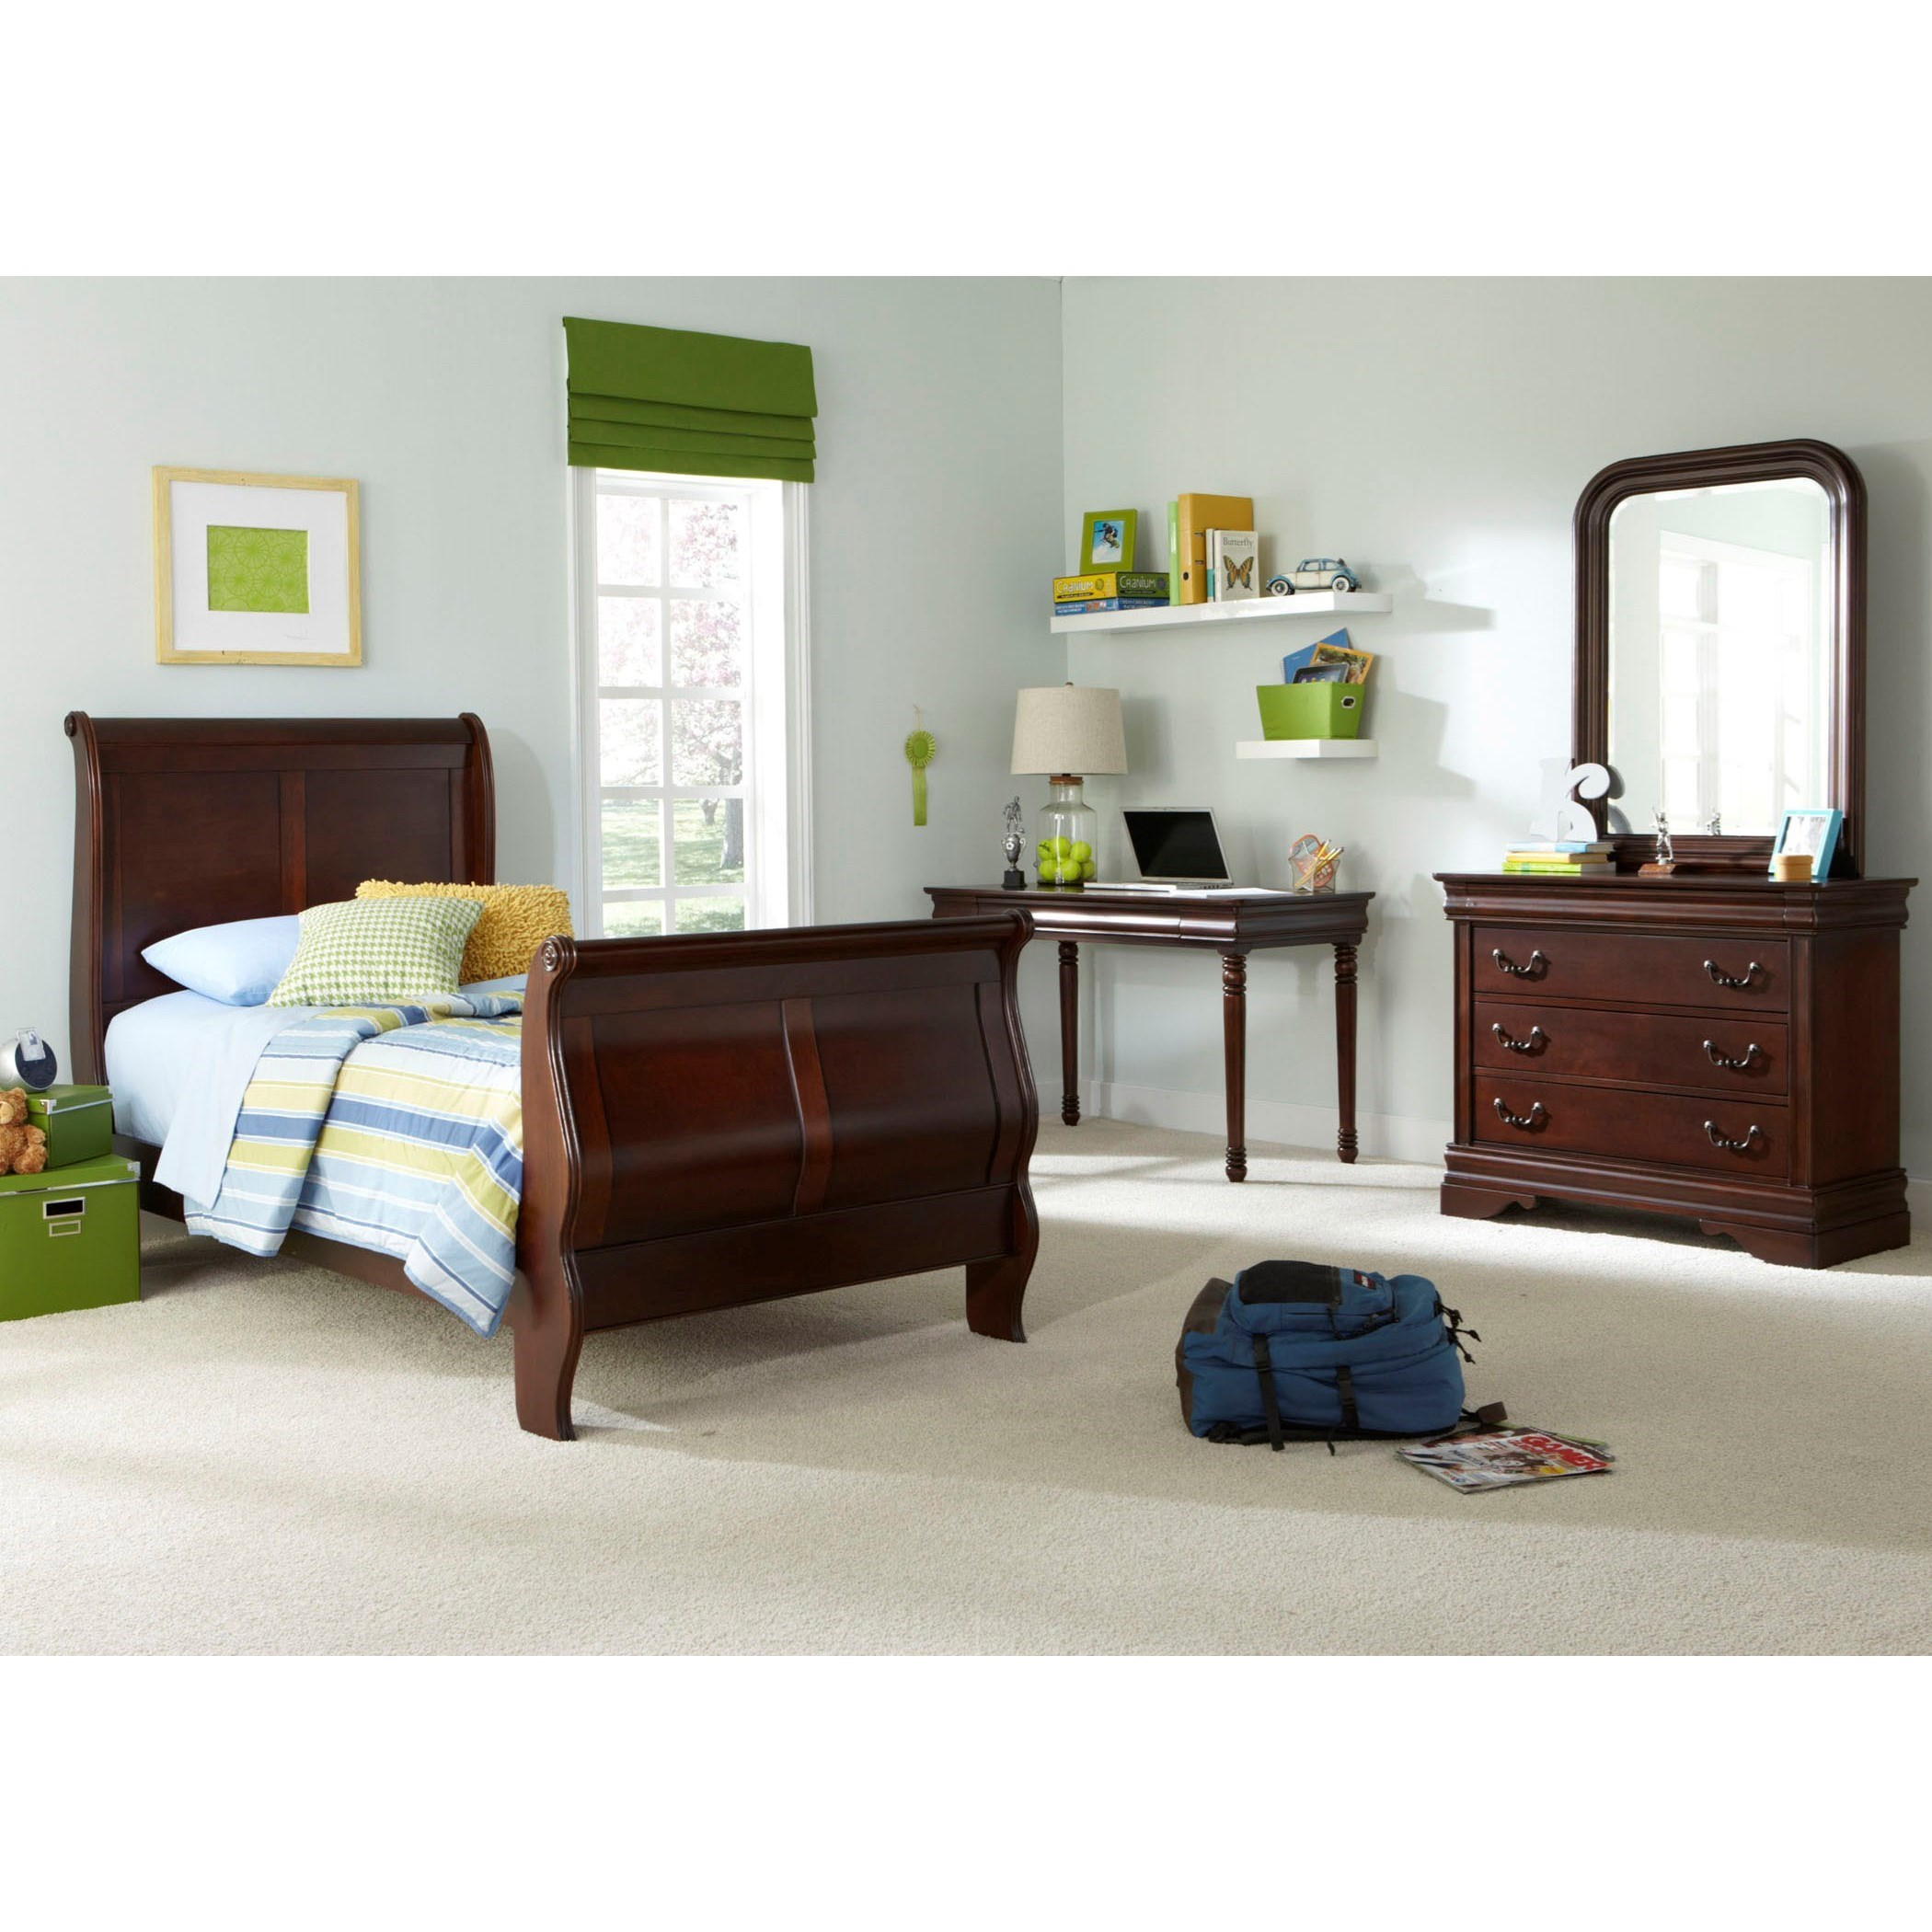 Carriage Court Full Sleigh Bed, Dresser & Mirror by Liberty Furniture at Northeast Factory Direct